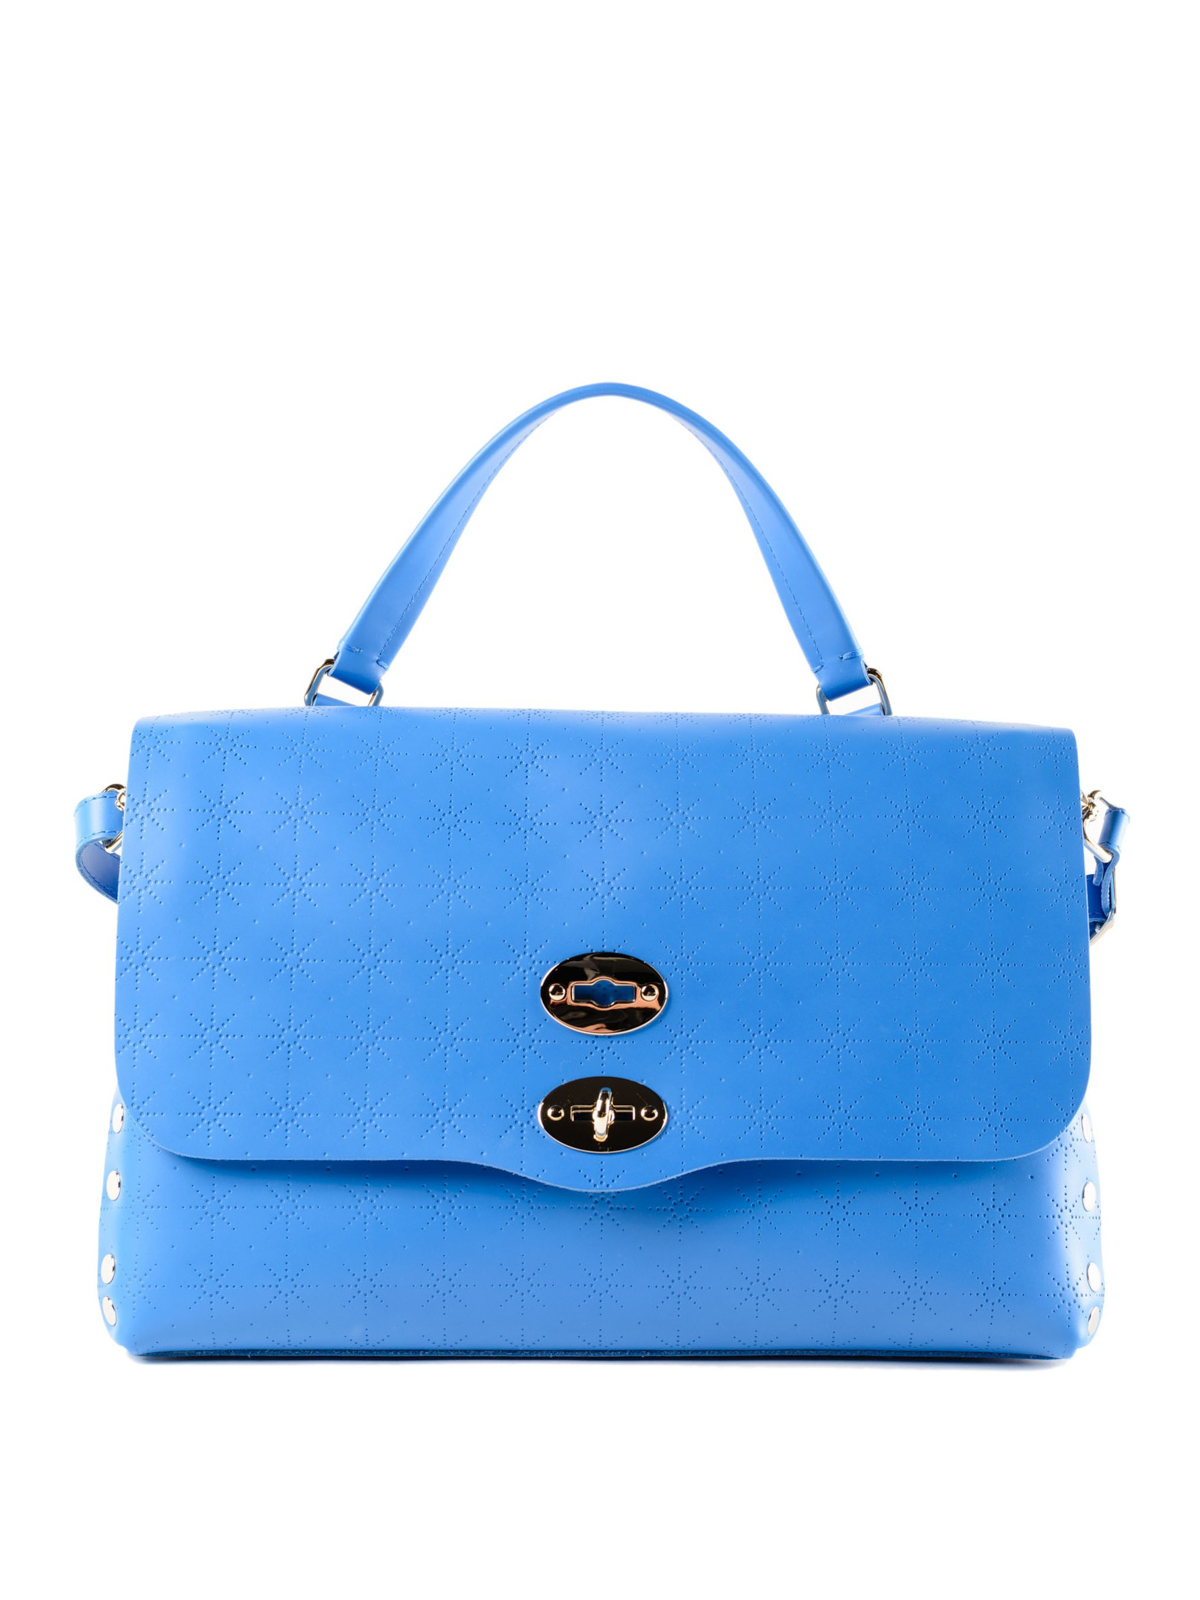 Zanellato Blue Astro Postina medium bag 2W3Zc1GJp1